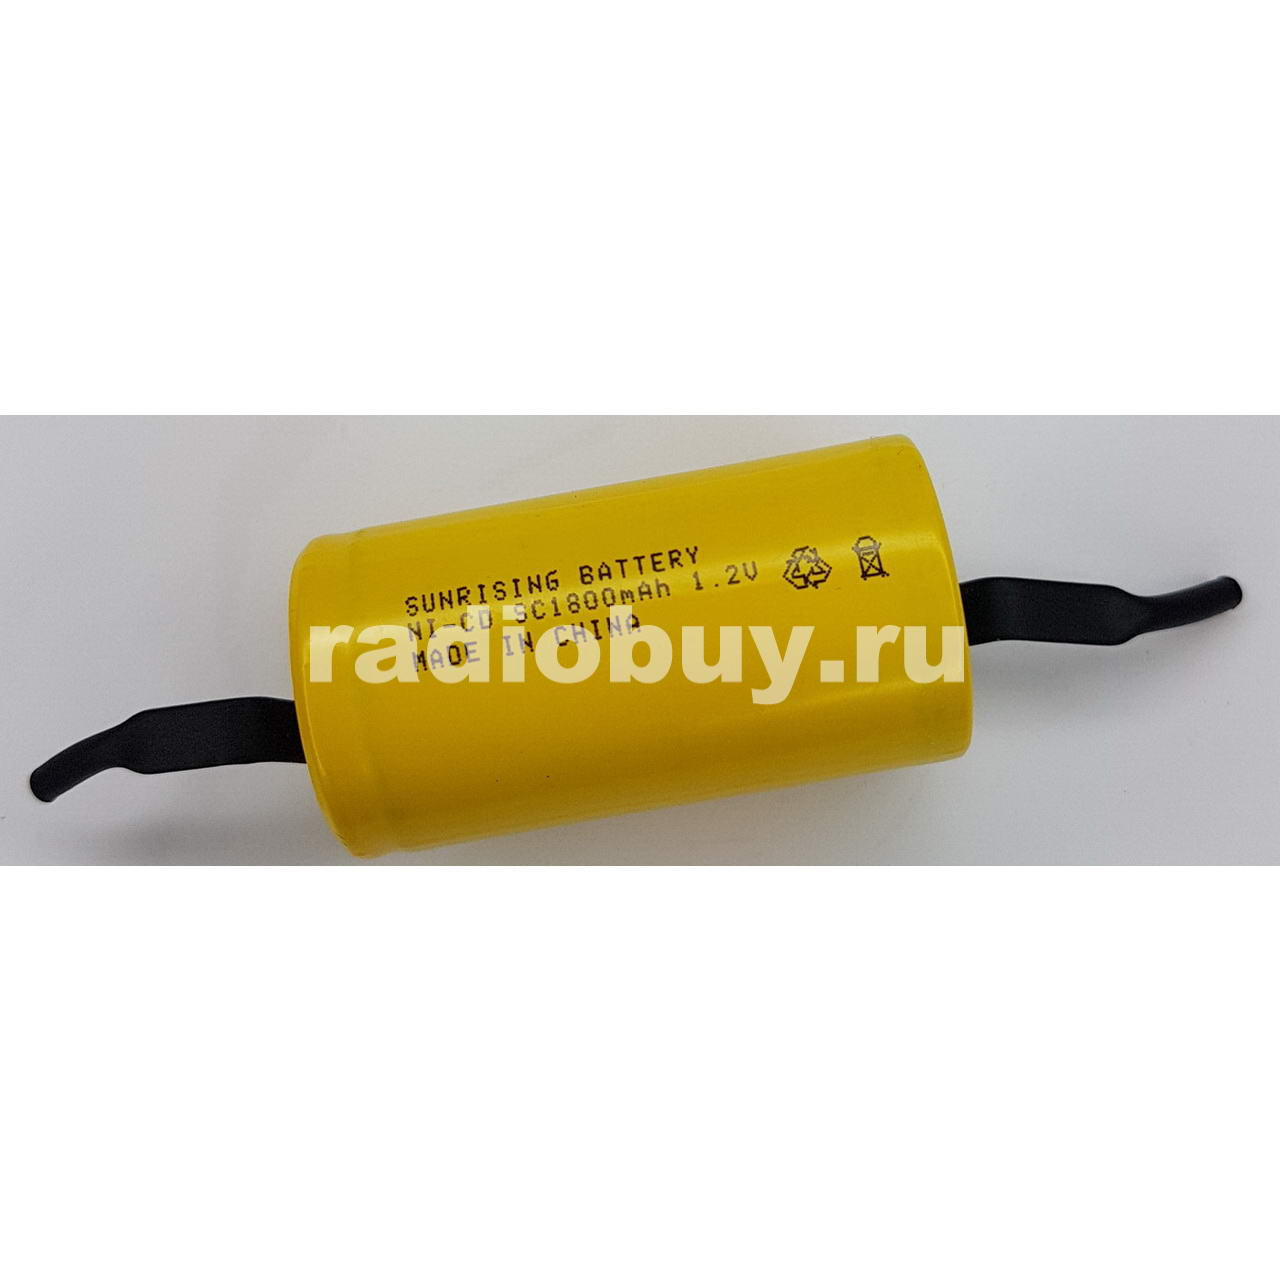 Аккумулятор Sunrising Ni-Cd SC, 1800mAh, (10C) с лепестками